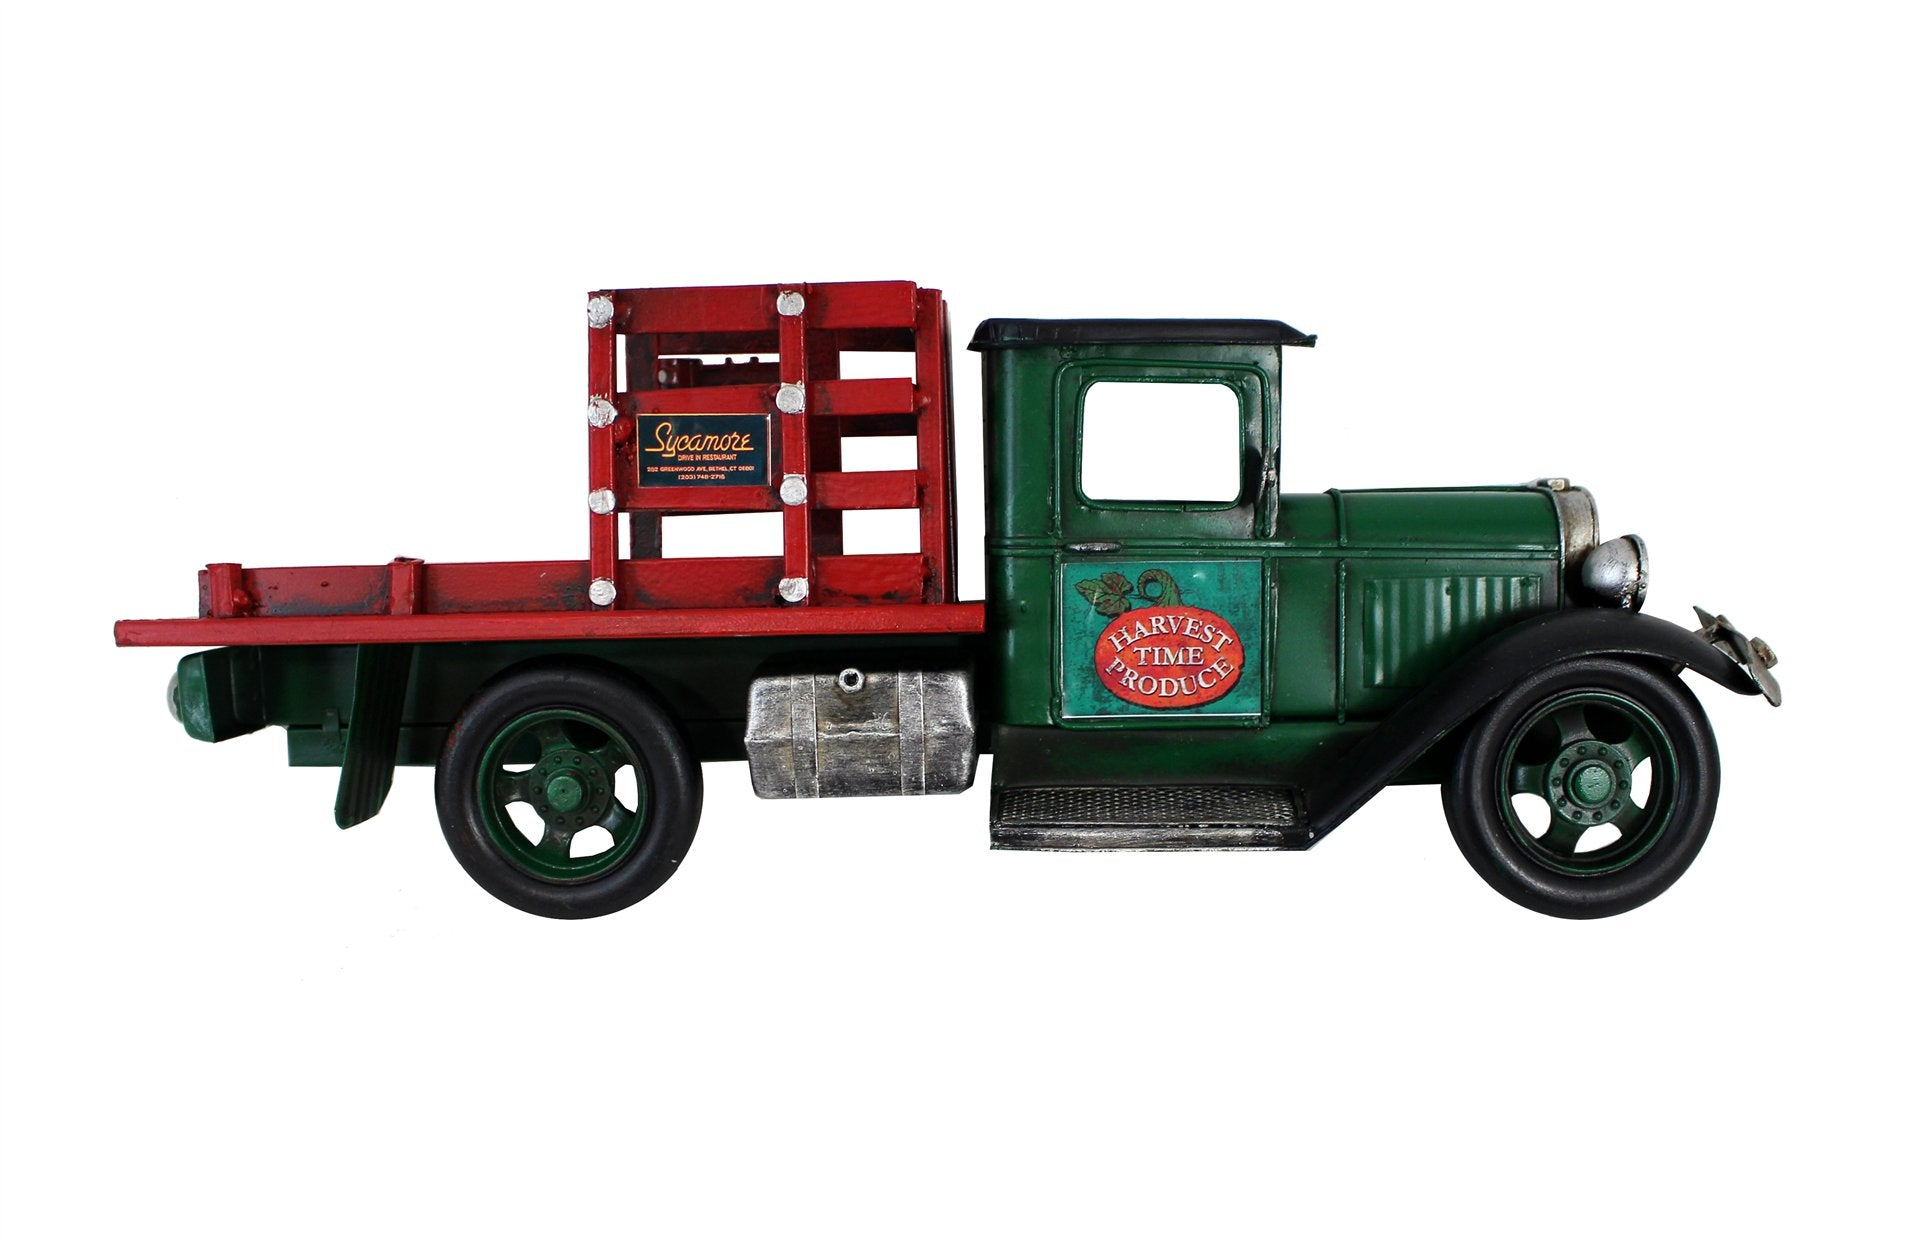 MINIATURE GREEN AND RED FLATBED TRUCK